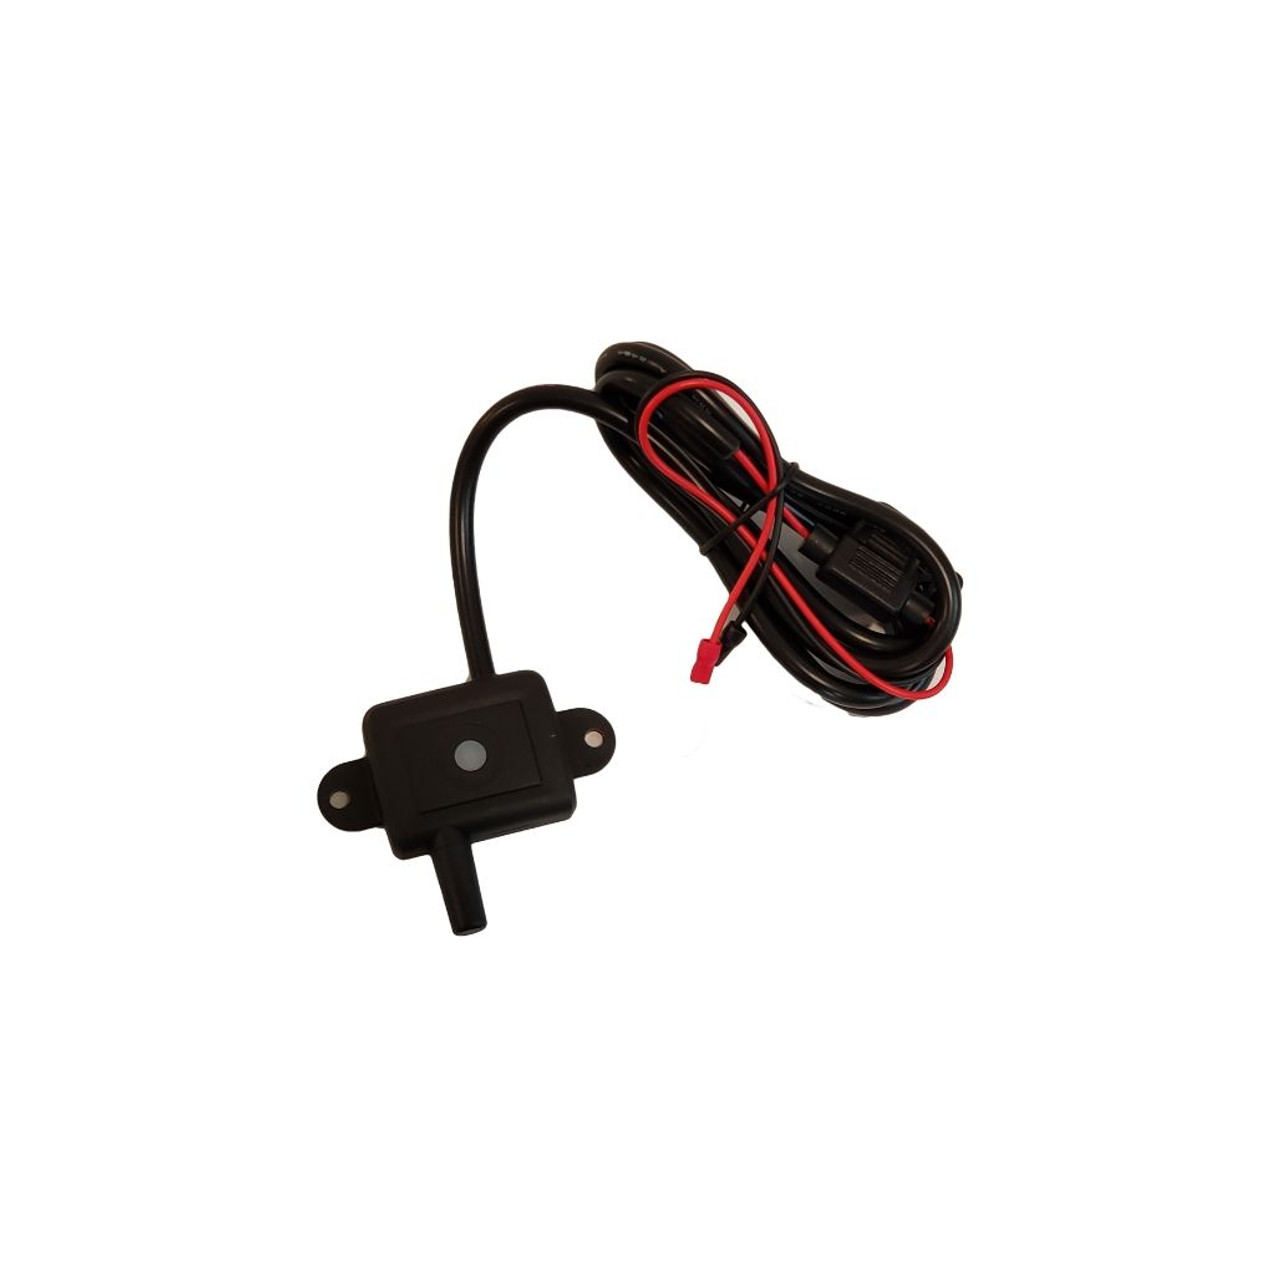 TST 507 TPMS with CAP Sensors (12) and Repeater